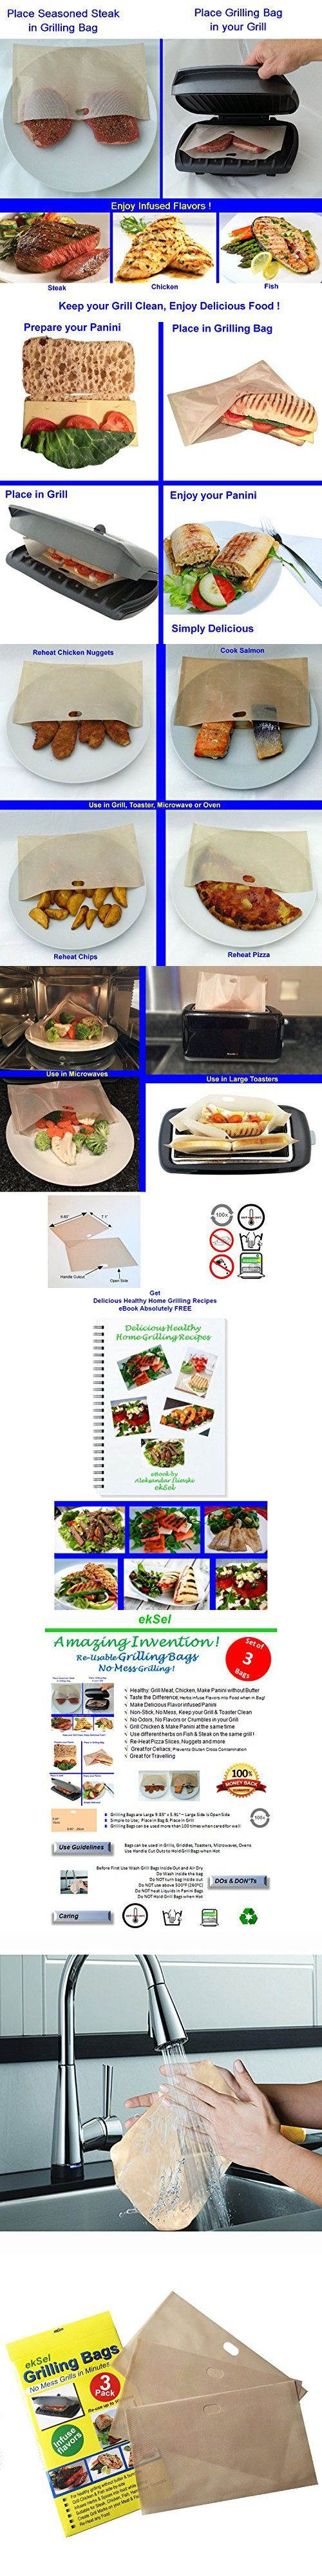 EkSel Non stick Reusable Grilling bags Panini Toaster bags Grill Baking parchment, Beige, Pack of 3, FDA approved